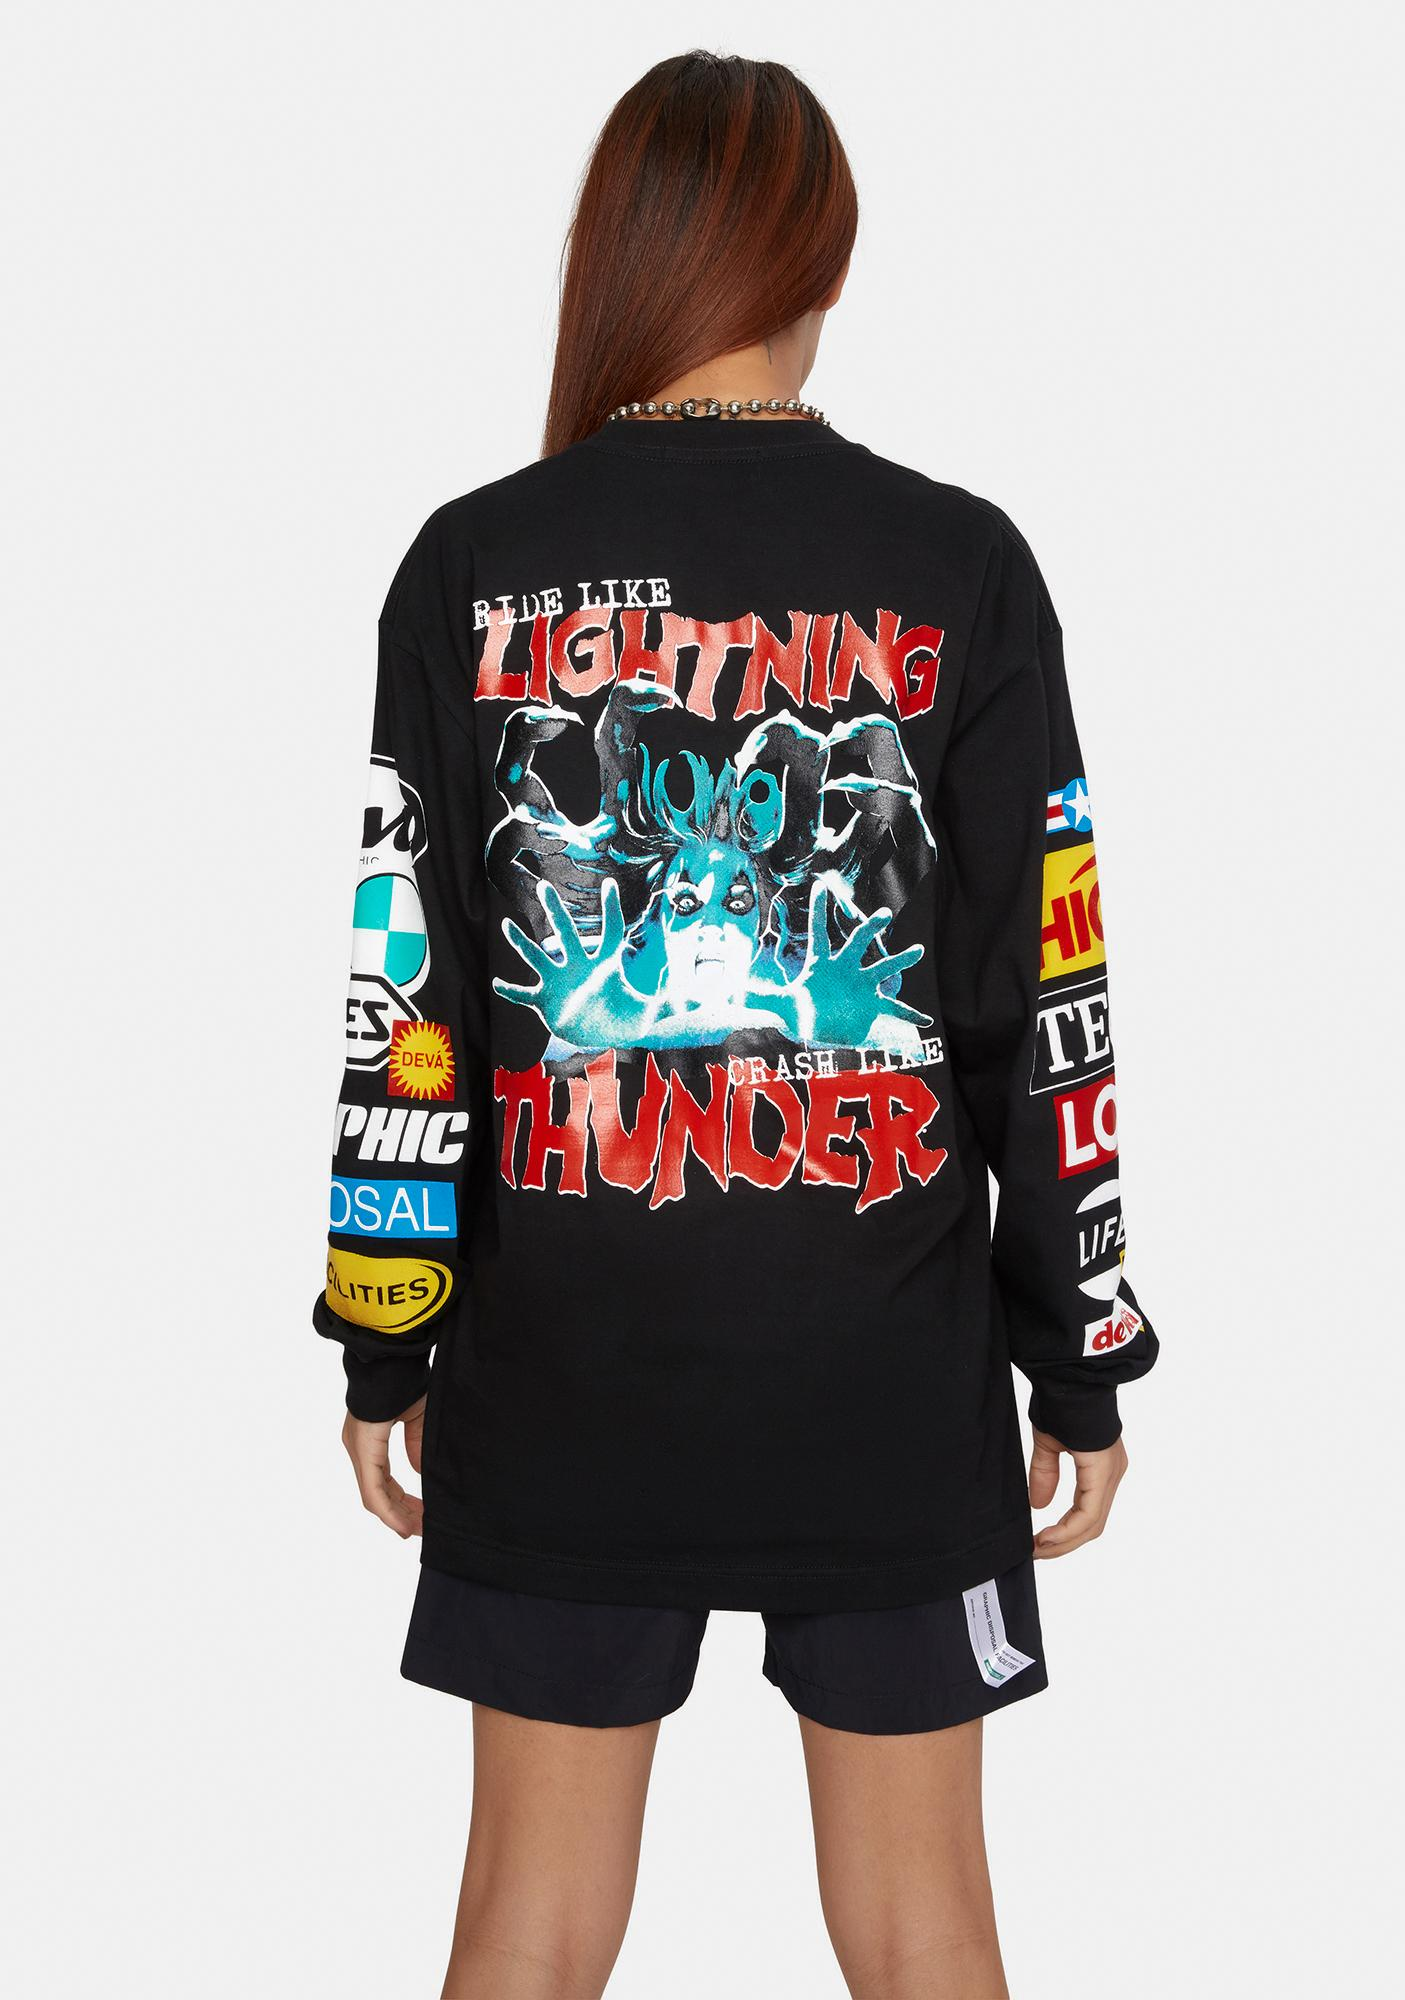 Deva States Lightning Graphic Tee